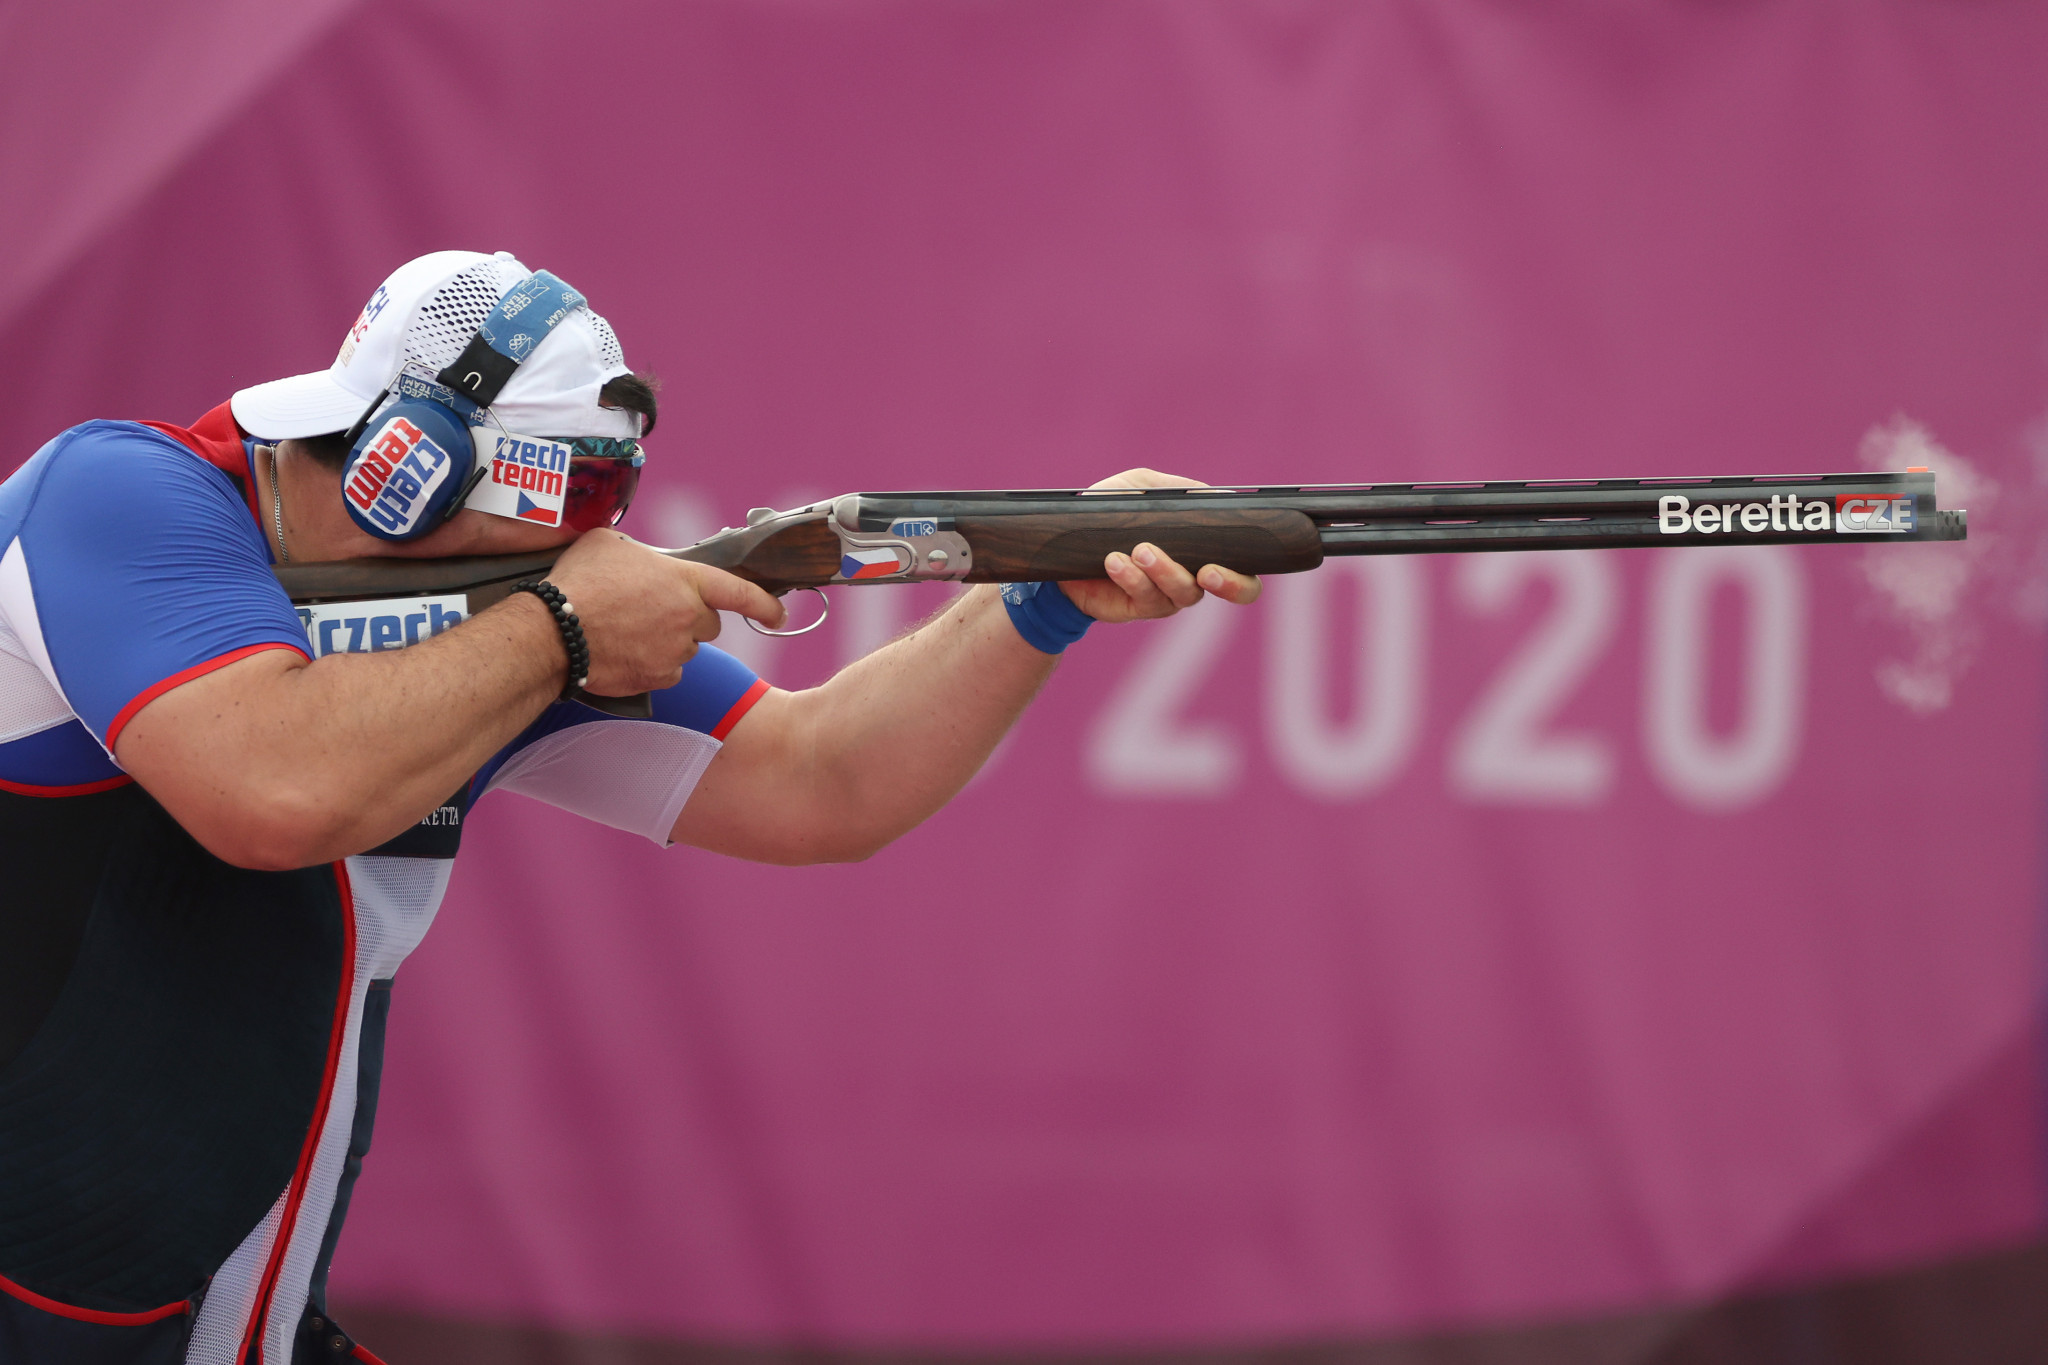 Jiri Liptak won gold in the men's trap competition at Tokyo 2020 ©Getty Images